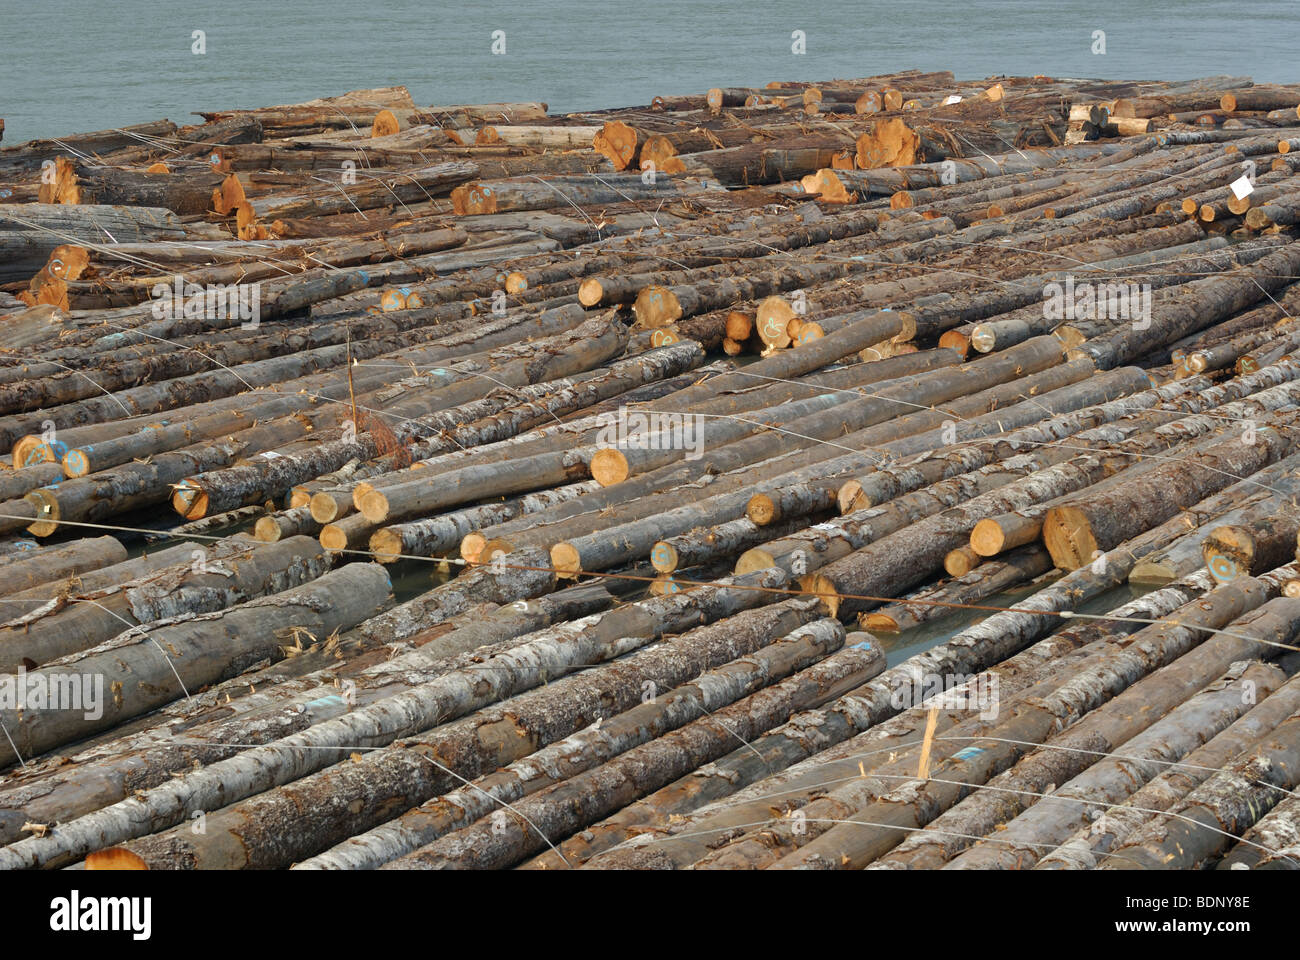 Log booms waiting for transfer to locale mills on the Fraser River. - Stock Image